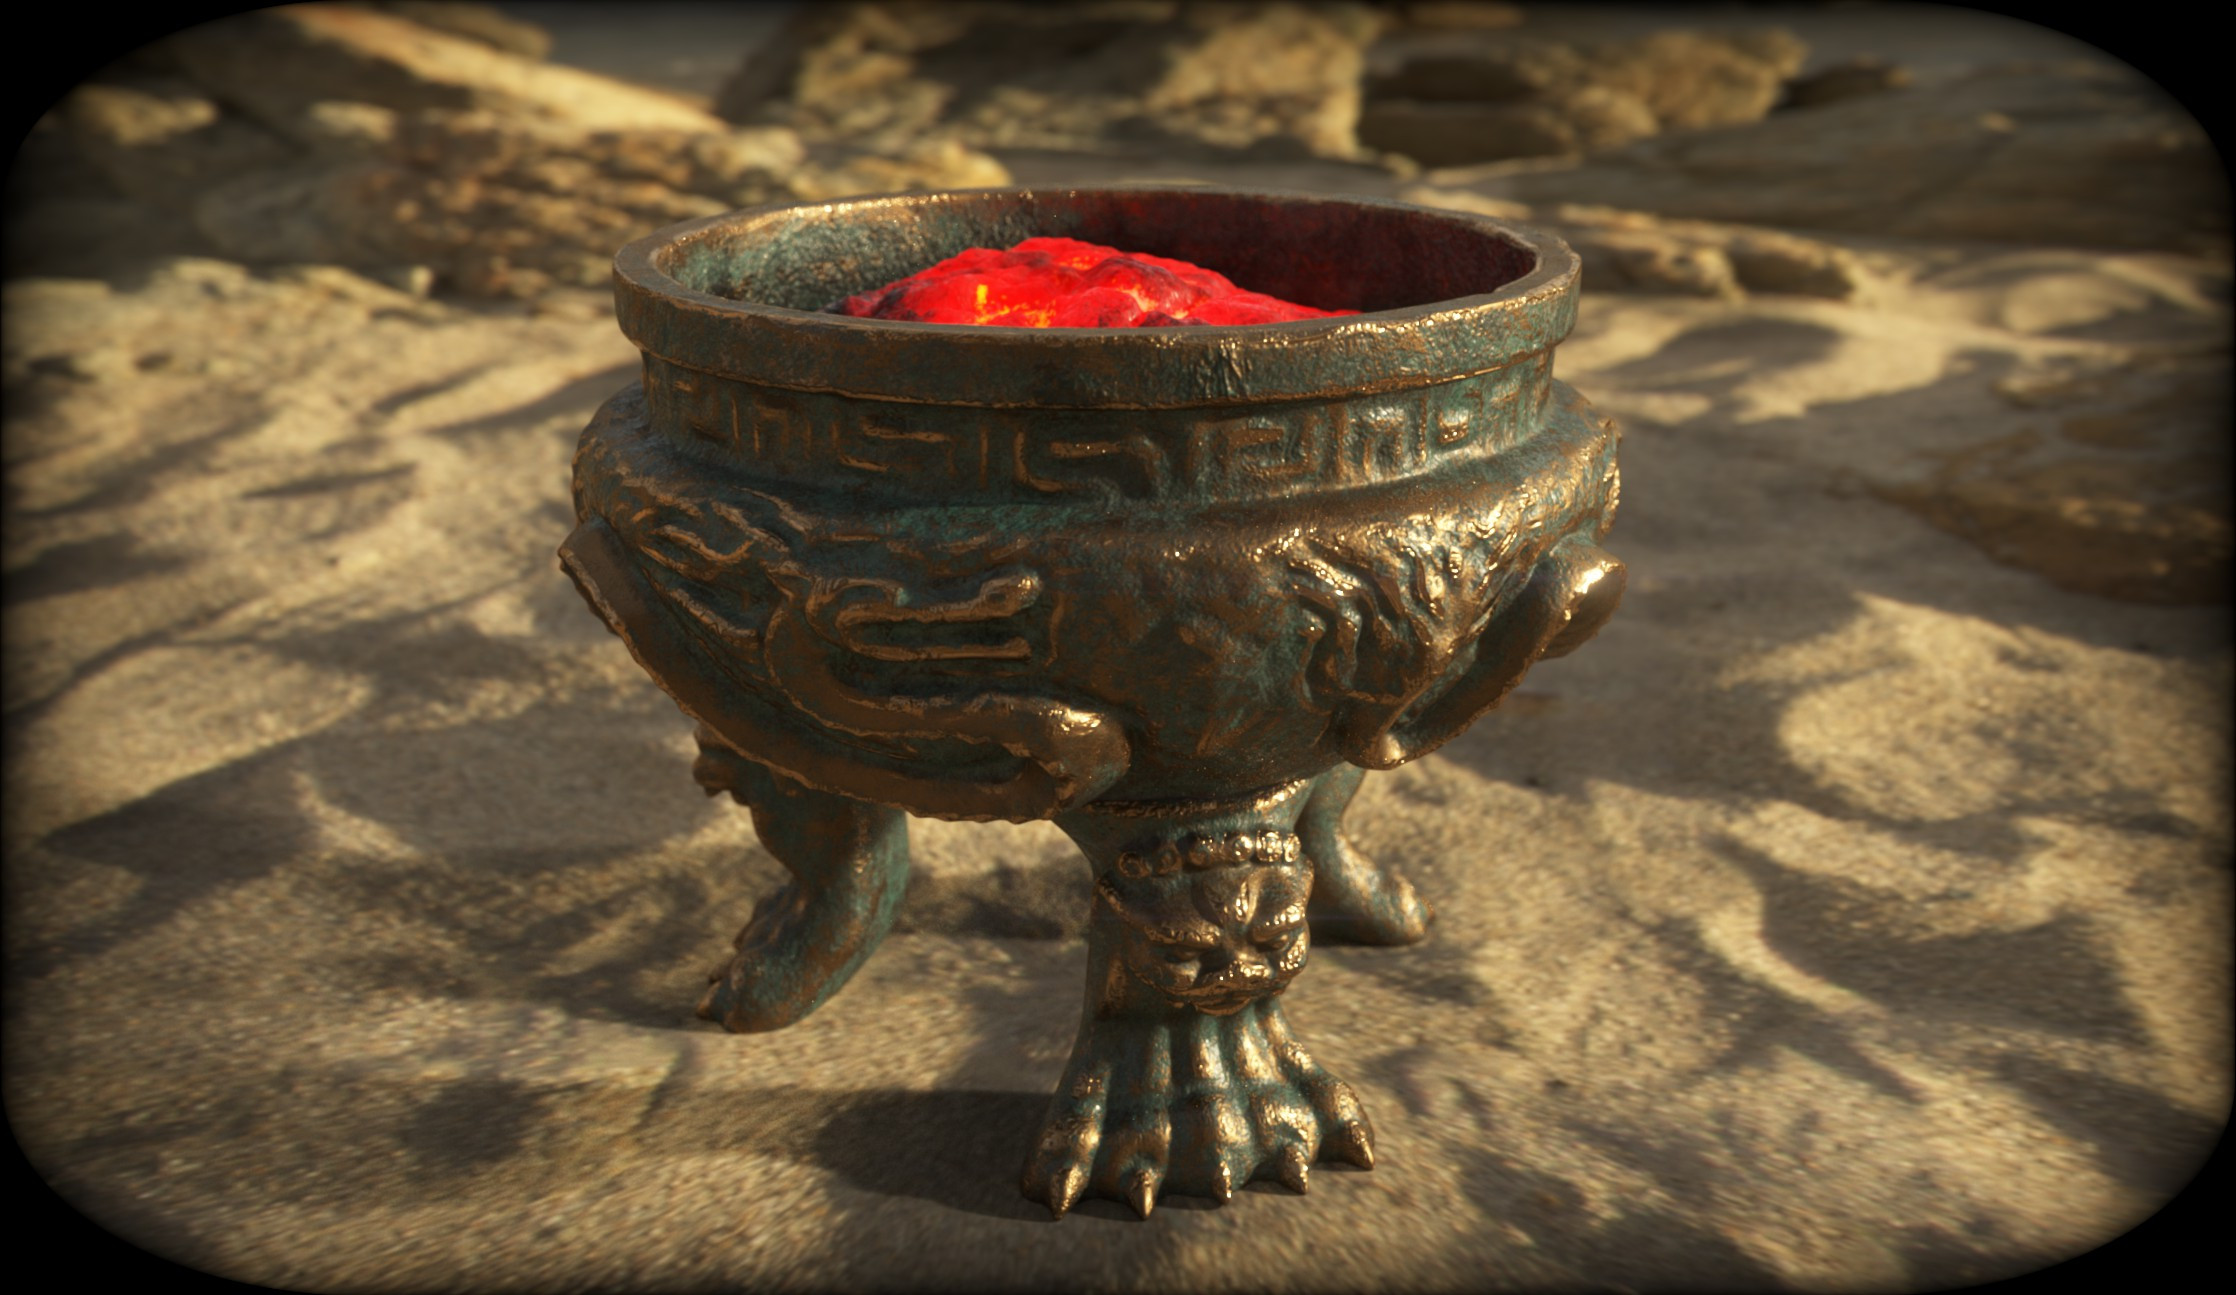 A test render with Iray in Substance Painter.